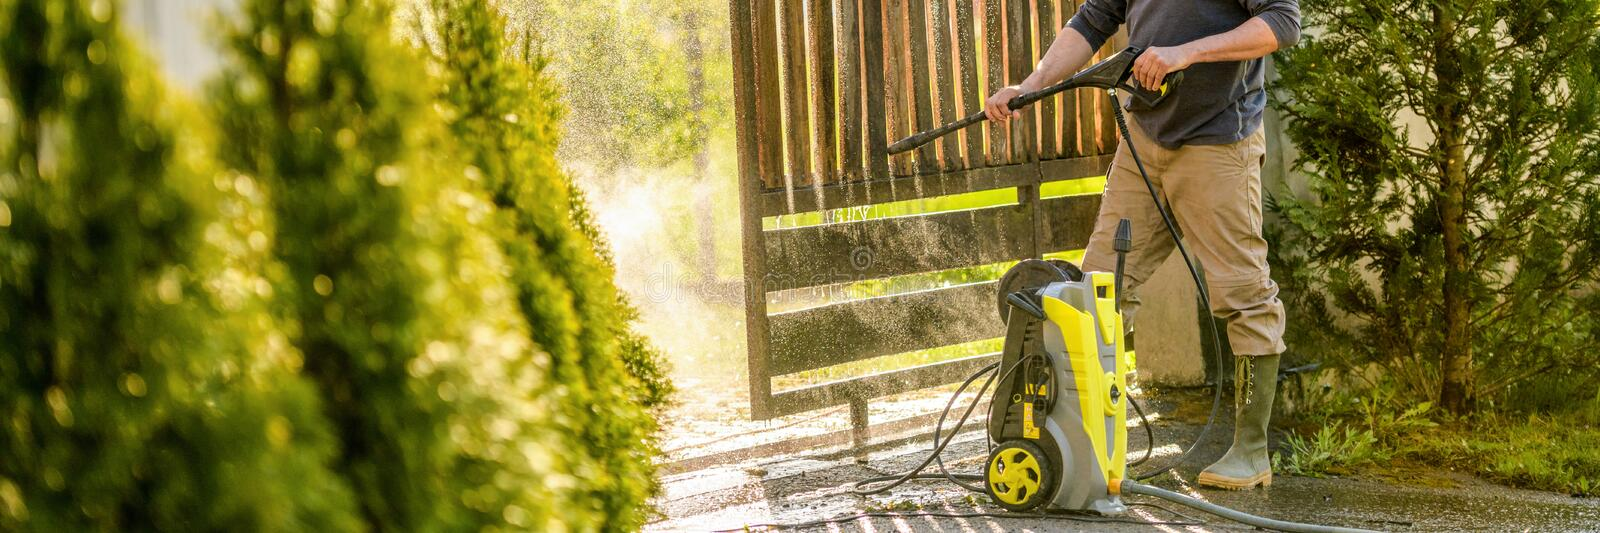 Unrecognizable man cleaning a wooden gate with a power washer. High pressure water cleaner used to DIY repair garden gate. royalty free stock photos